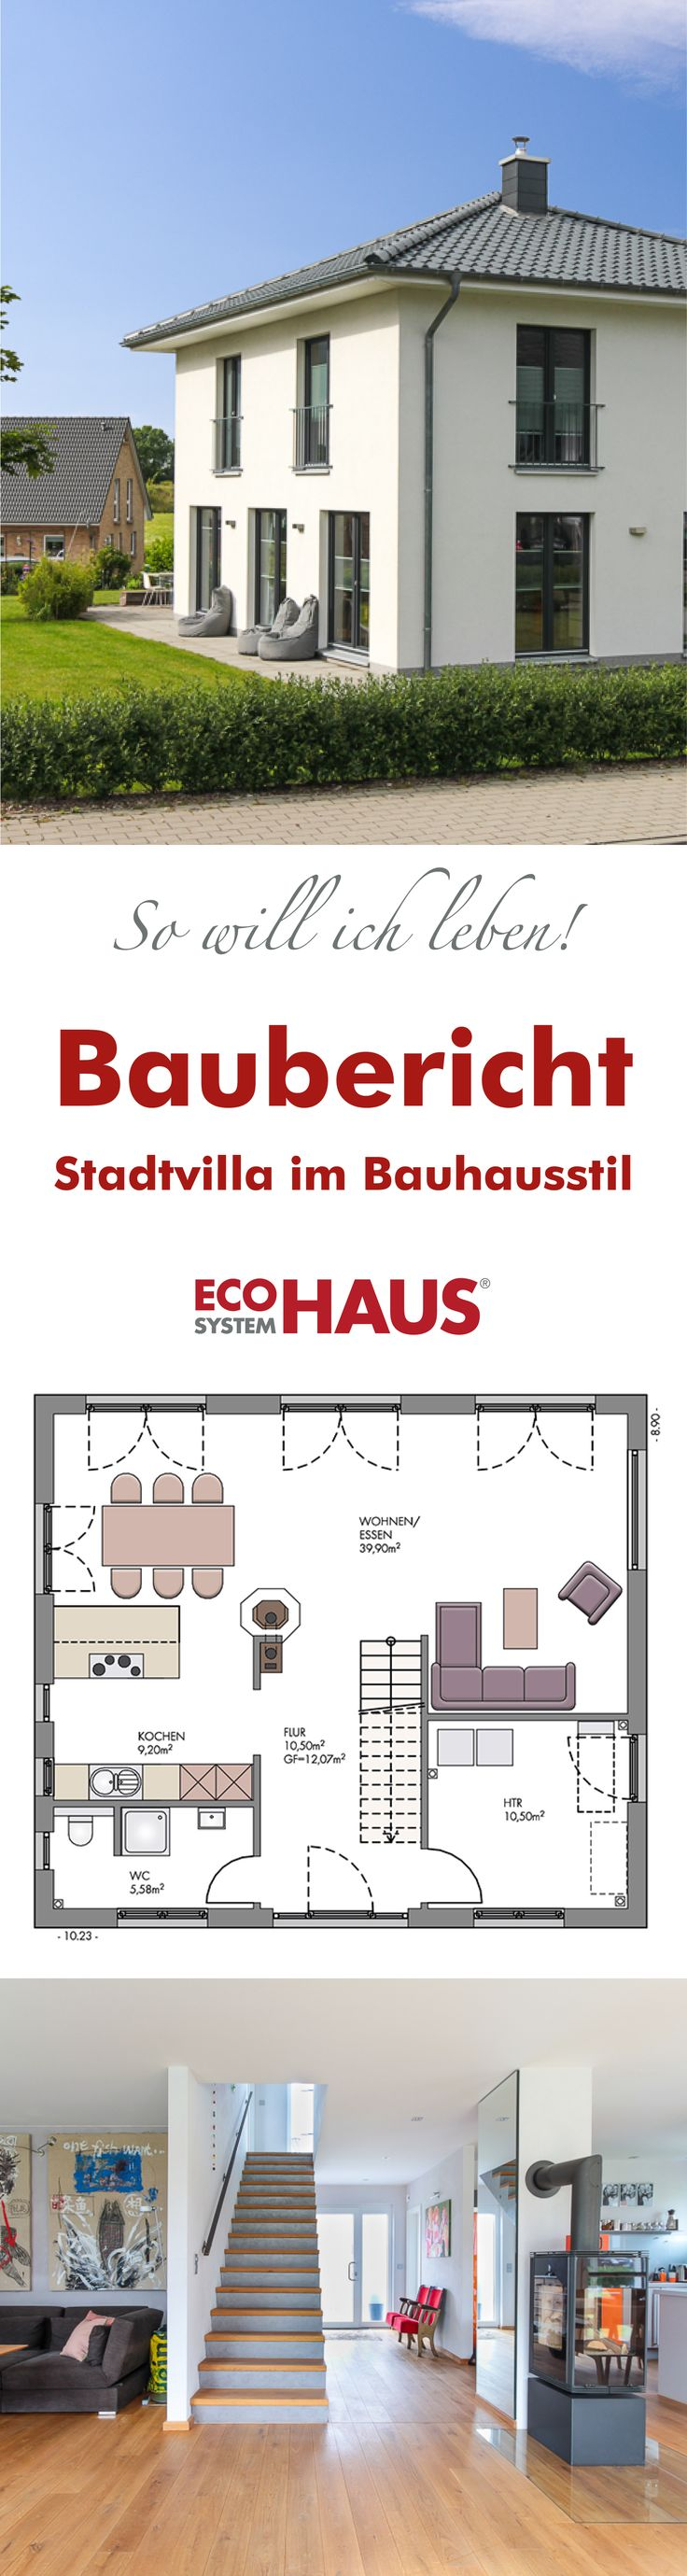 die besten 25 bauhausstil haus ideen auf pinterest fenster eingangst ren und doppelhaus. Black Bedroom Furniture Sets. Home Design Ideas